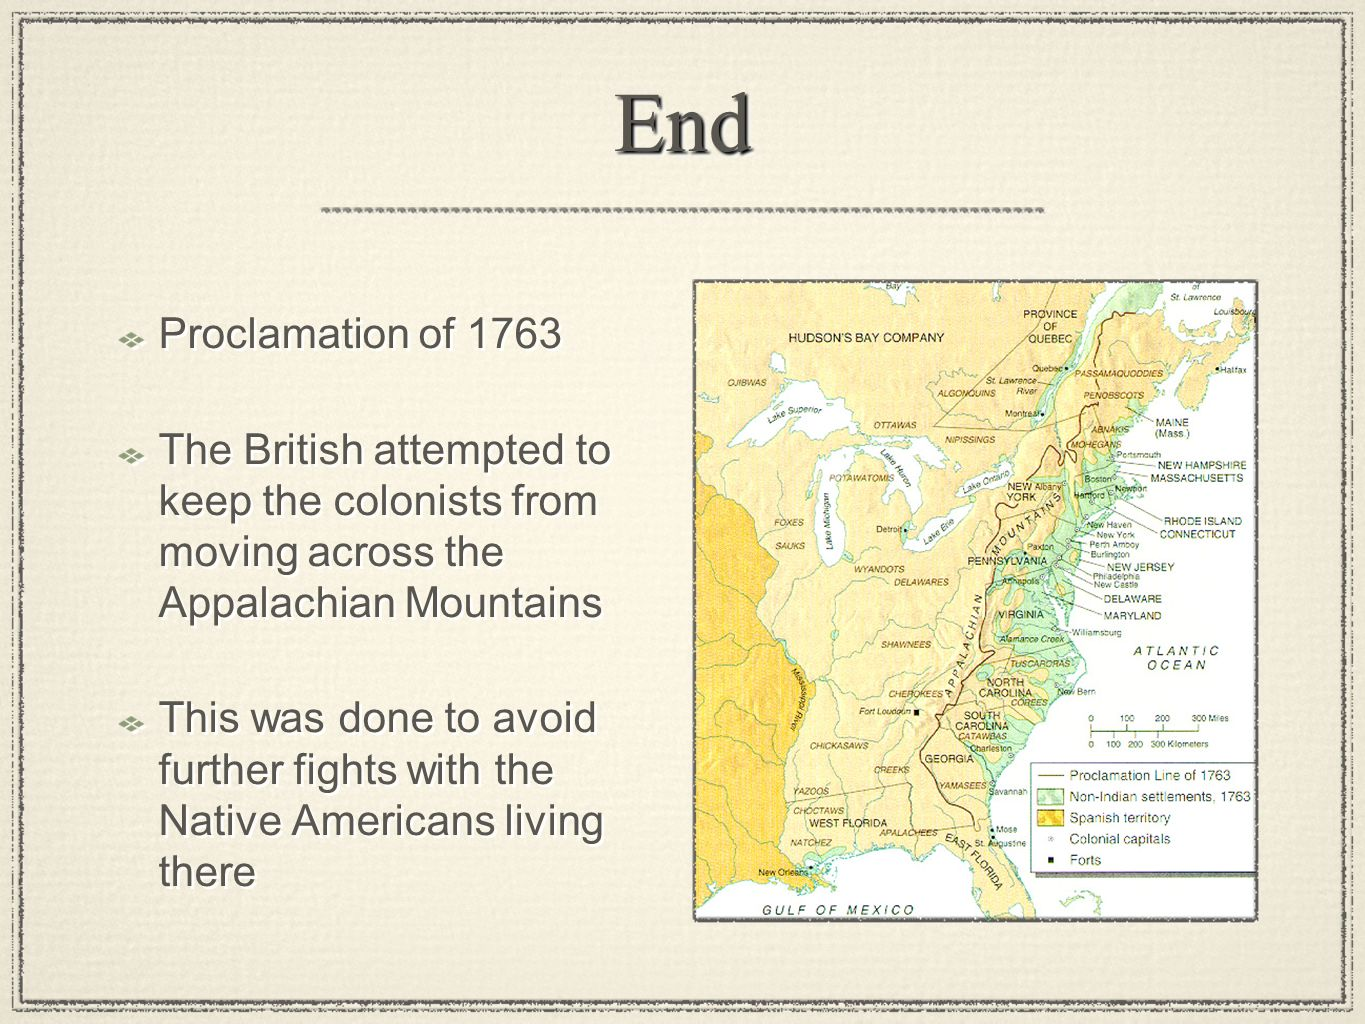 End Proclamation of The British attempted to keep the colonists from moving across the Appalachian Mountains.